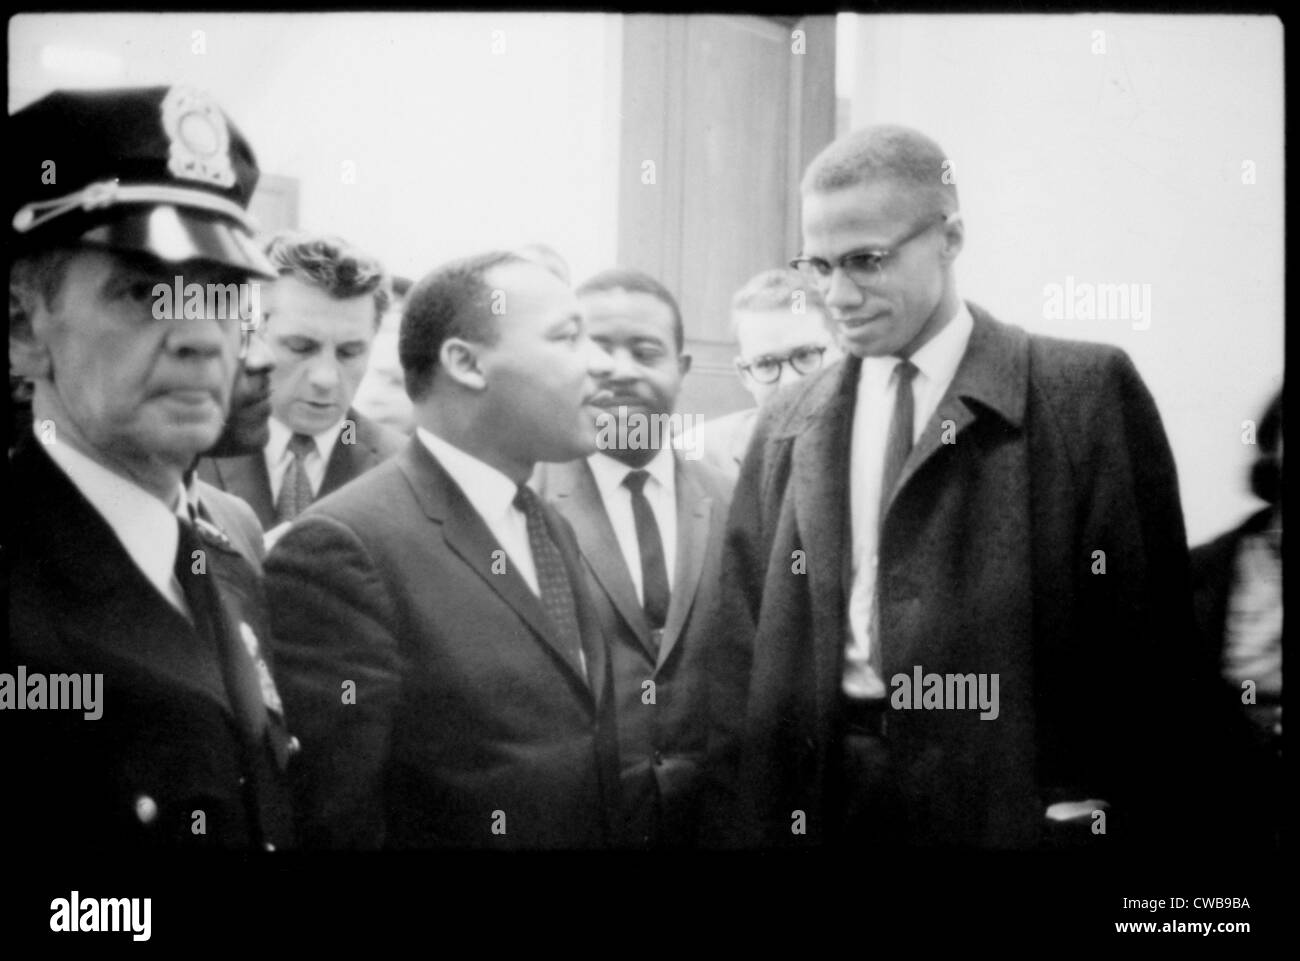 Martin Luther King Jr., and Malcolm X, waiting for press conference, 1964. - Stock Image